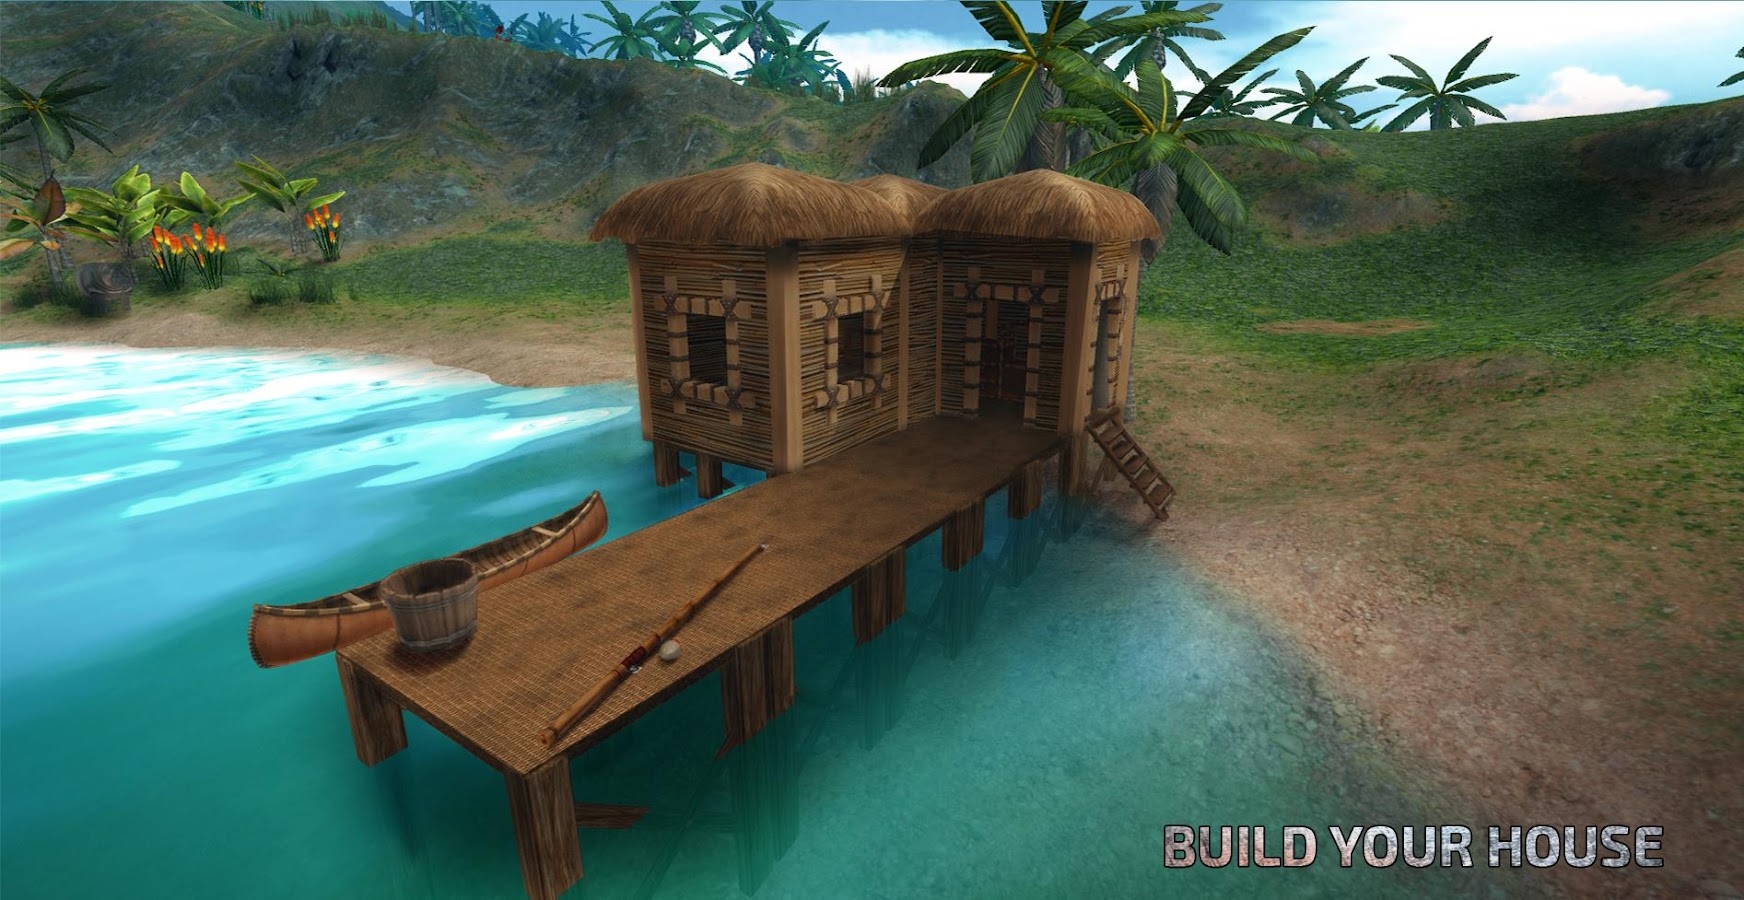 Survival Island Evolve Survivor Building Home Android Apps On Google Play: create a house online game